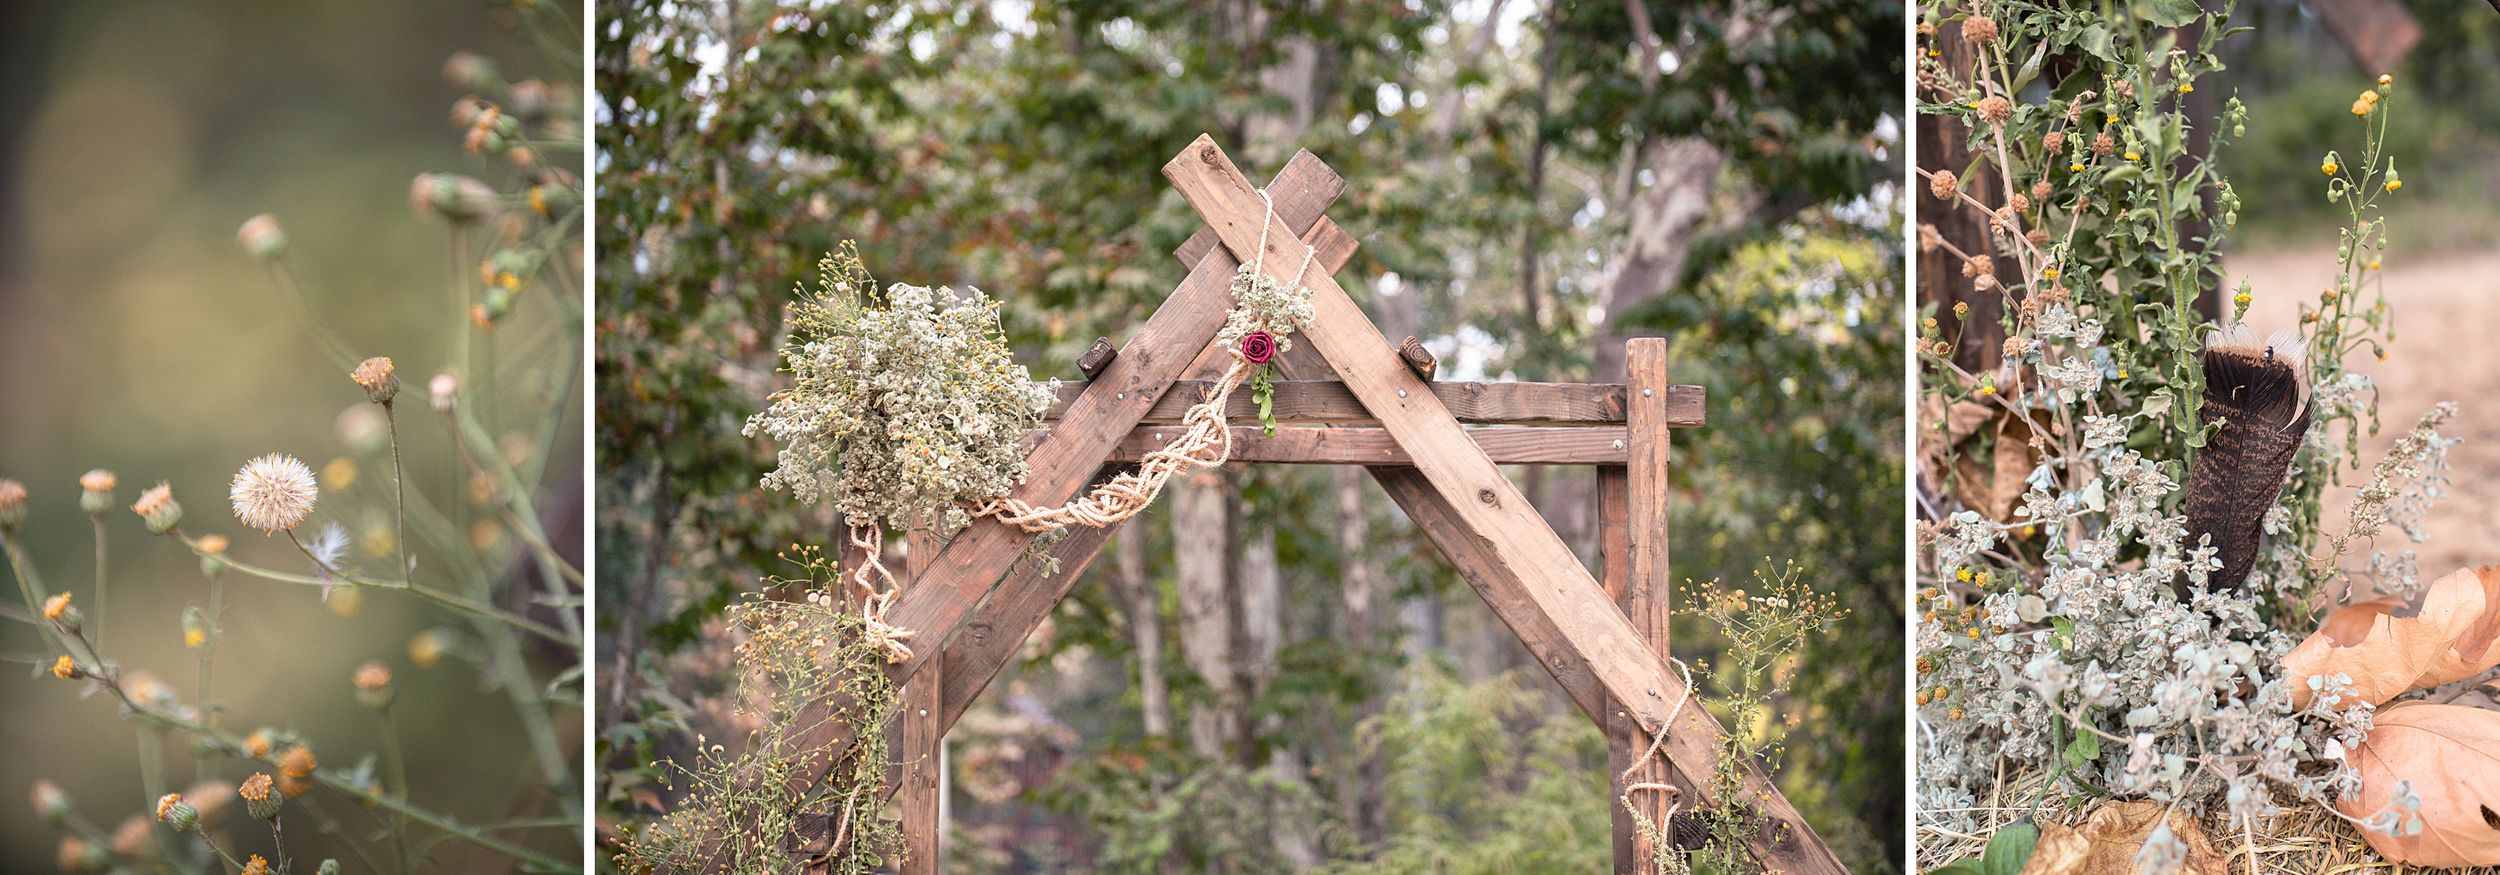 outdoor wedding in three rivers california riata ranch ceremony arch decor